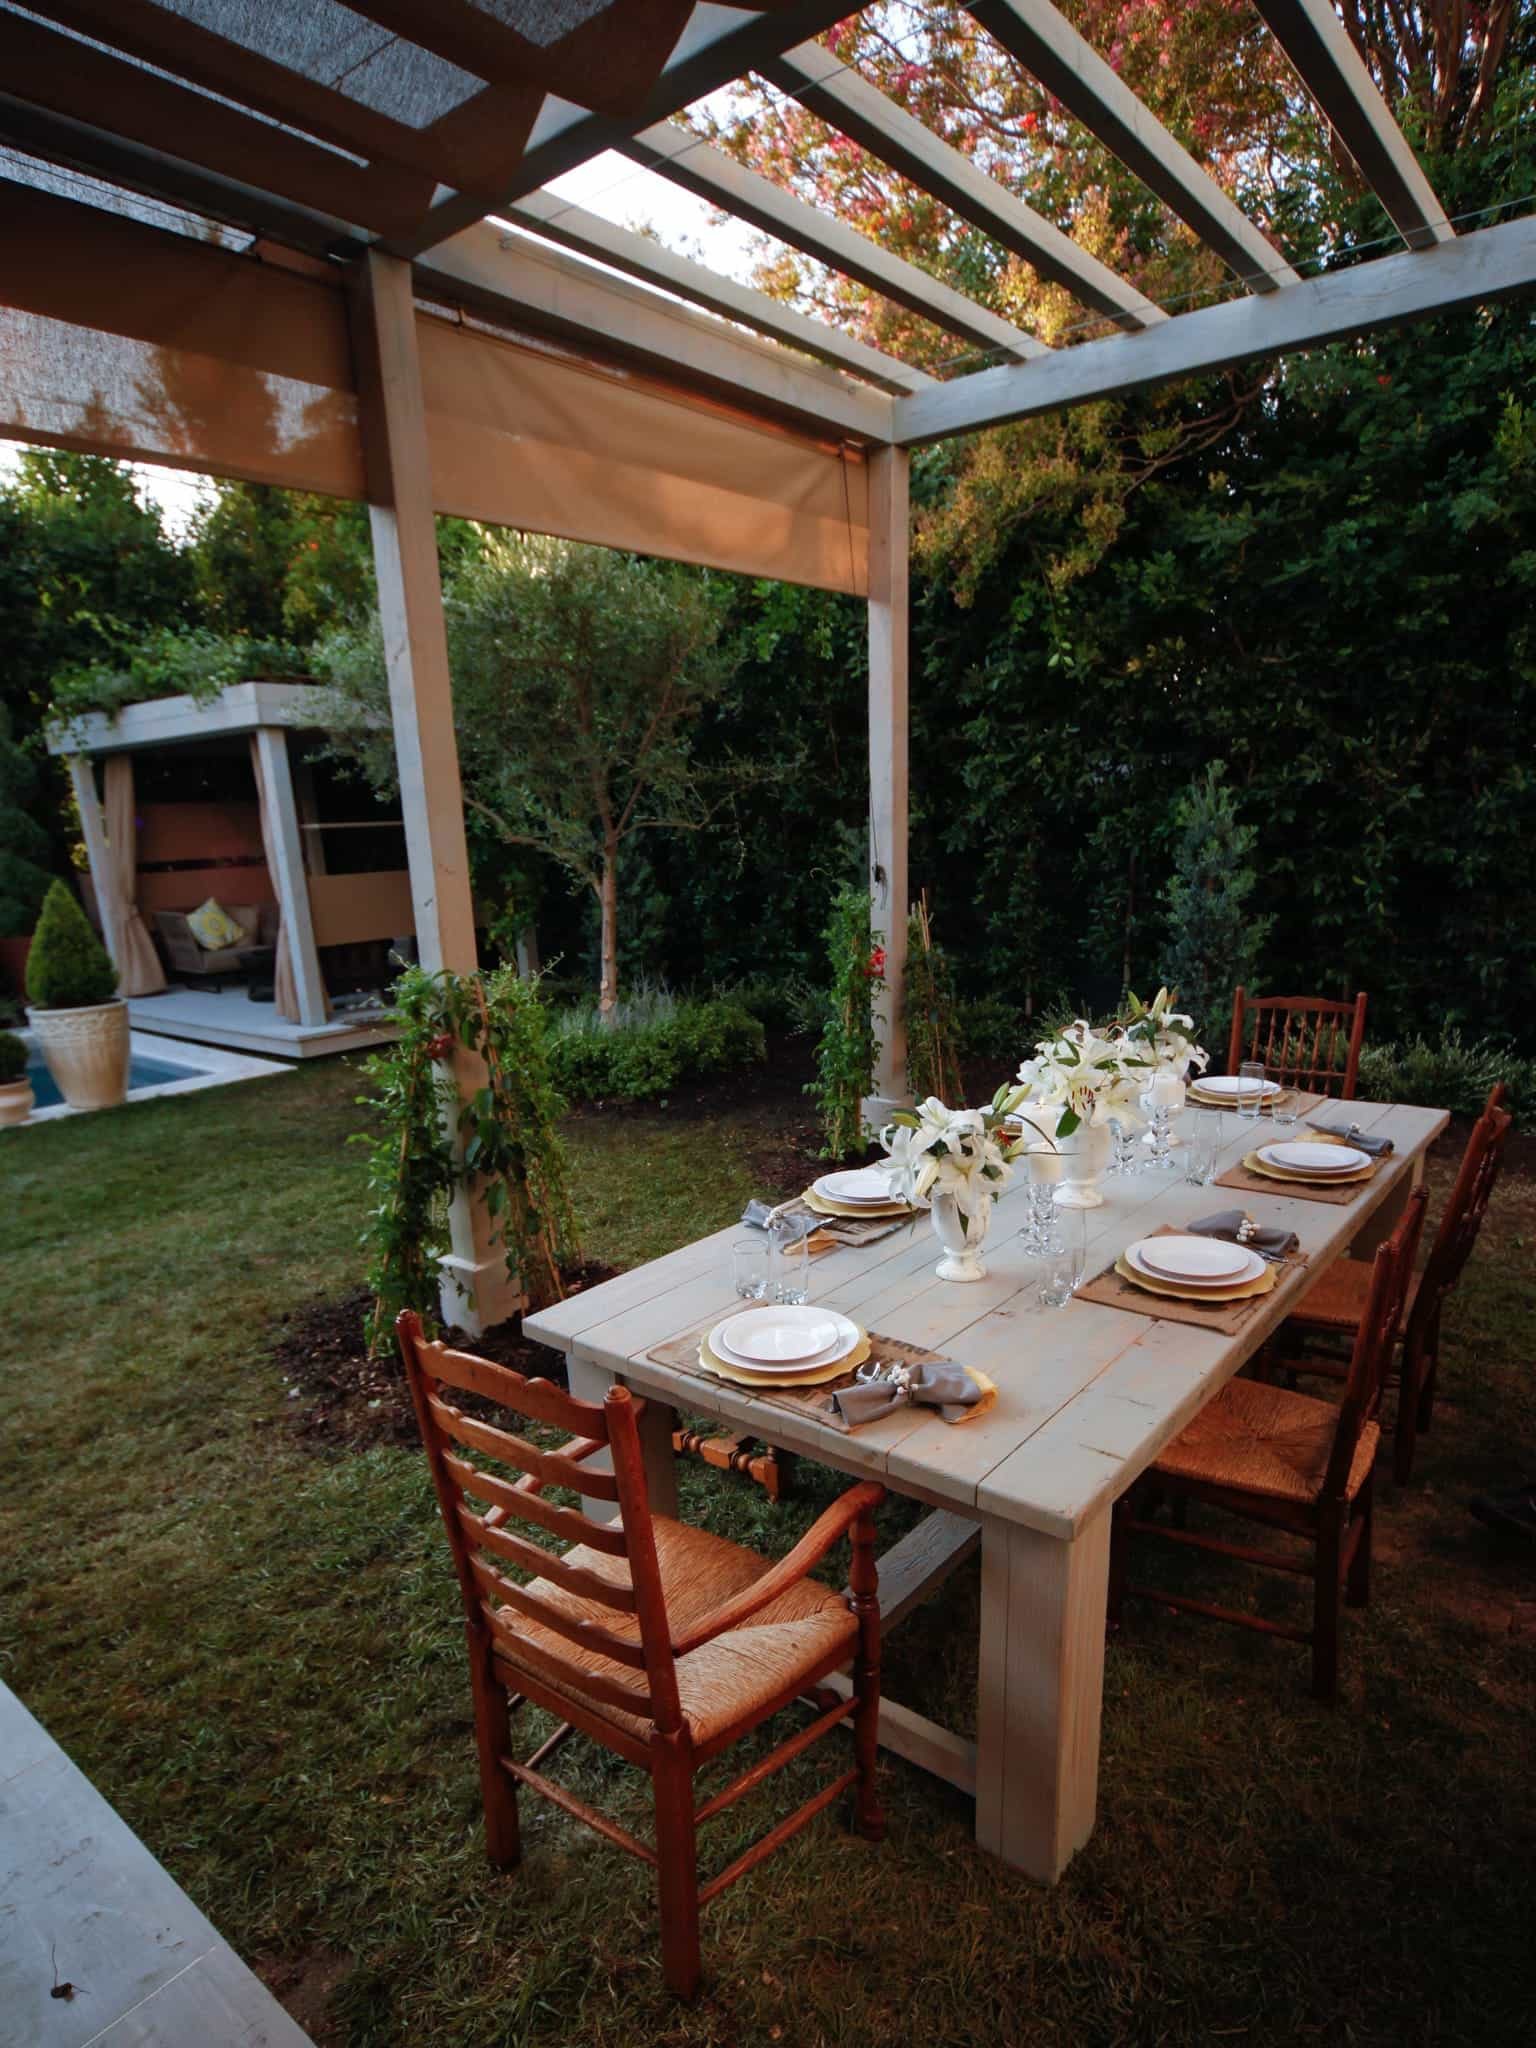 European Style Dining Table For Romantic Outdoor Dinner (View 7 of 8)